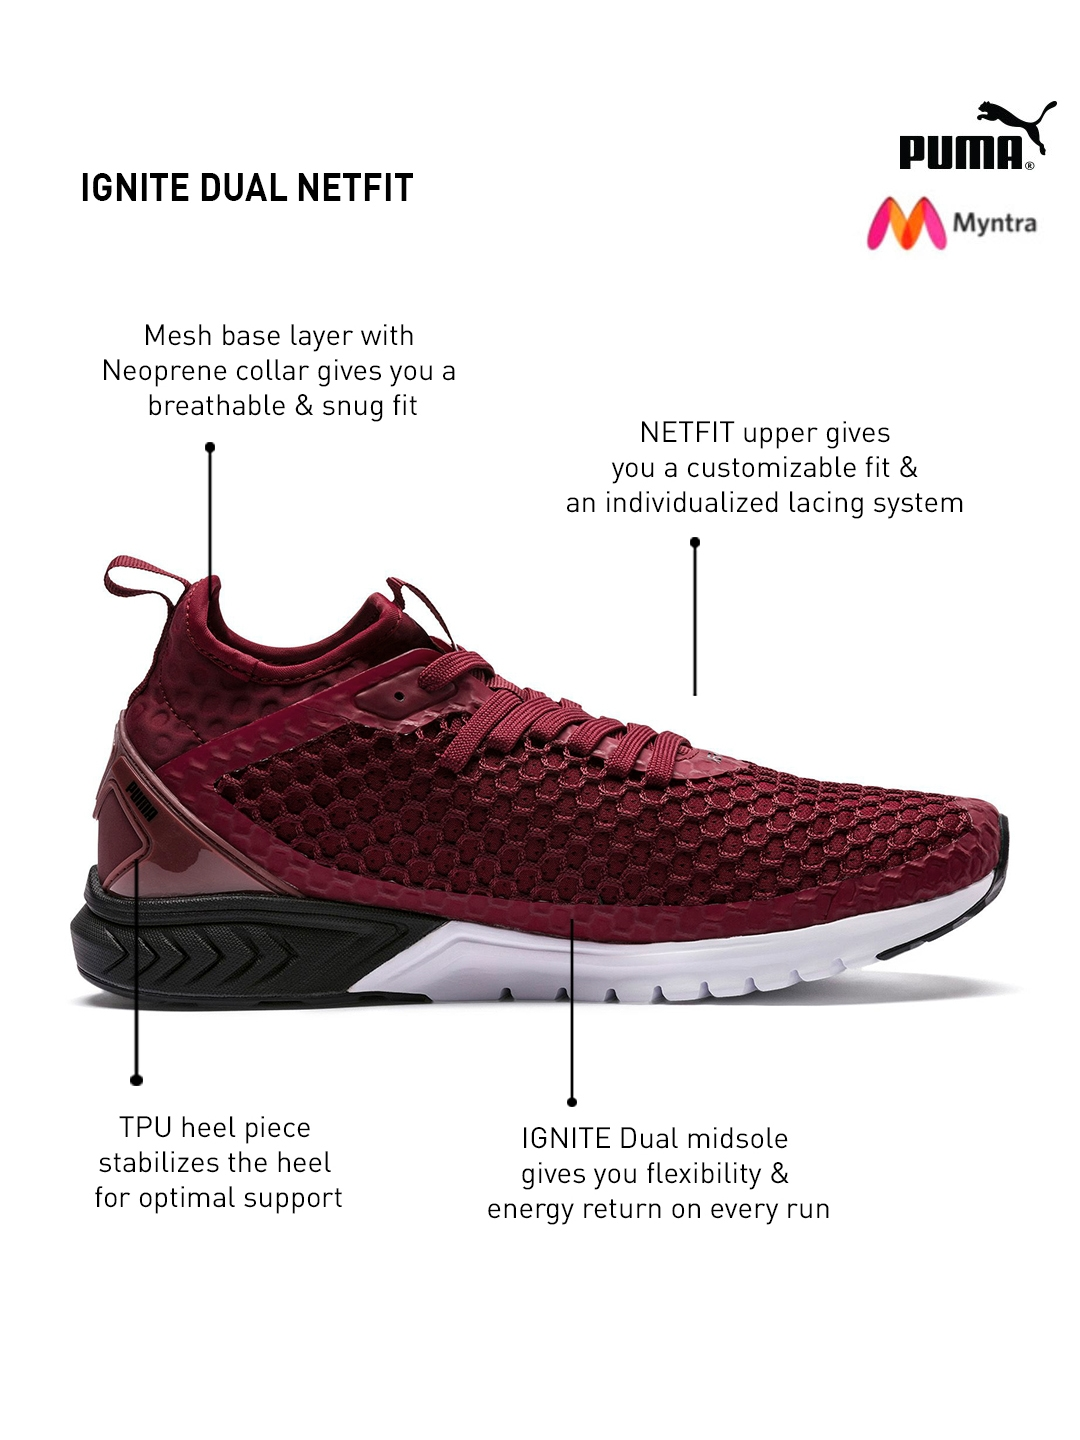 Running Men Sports Dual Ignite Netfit Puma Maroon Buy Shoes wCaOU6Ynx